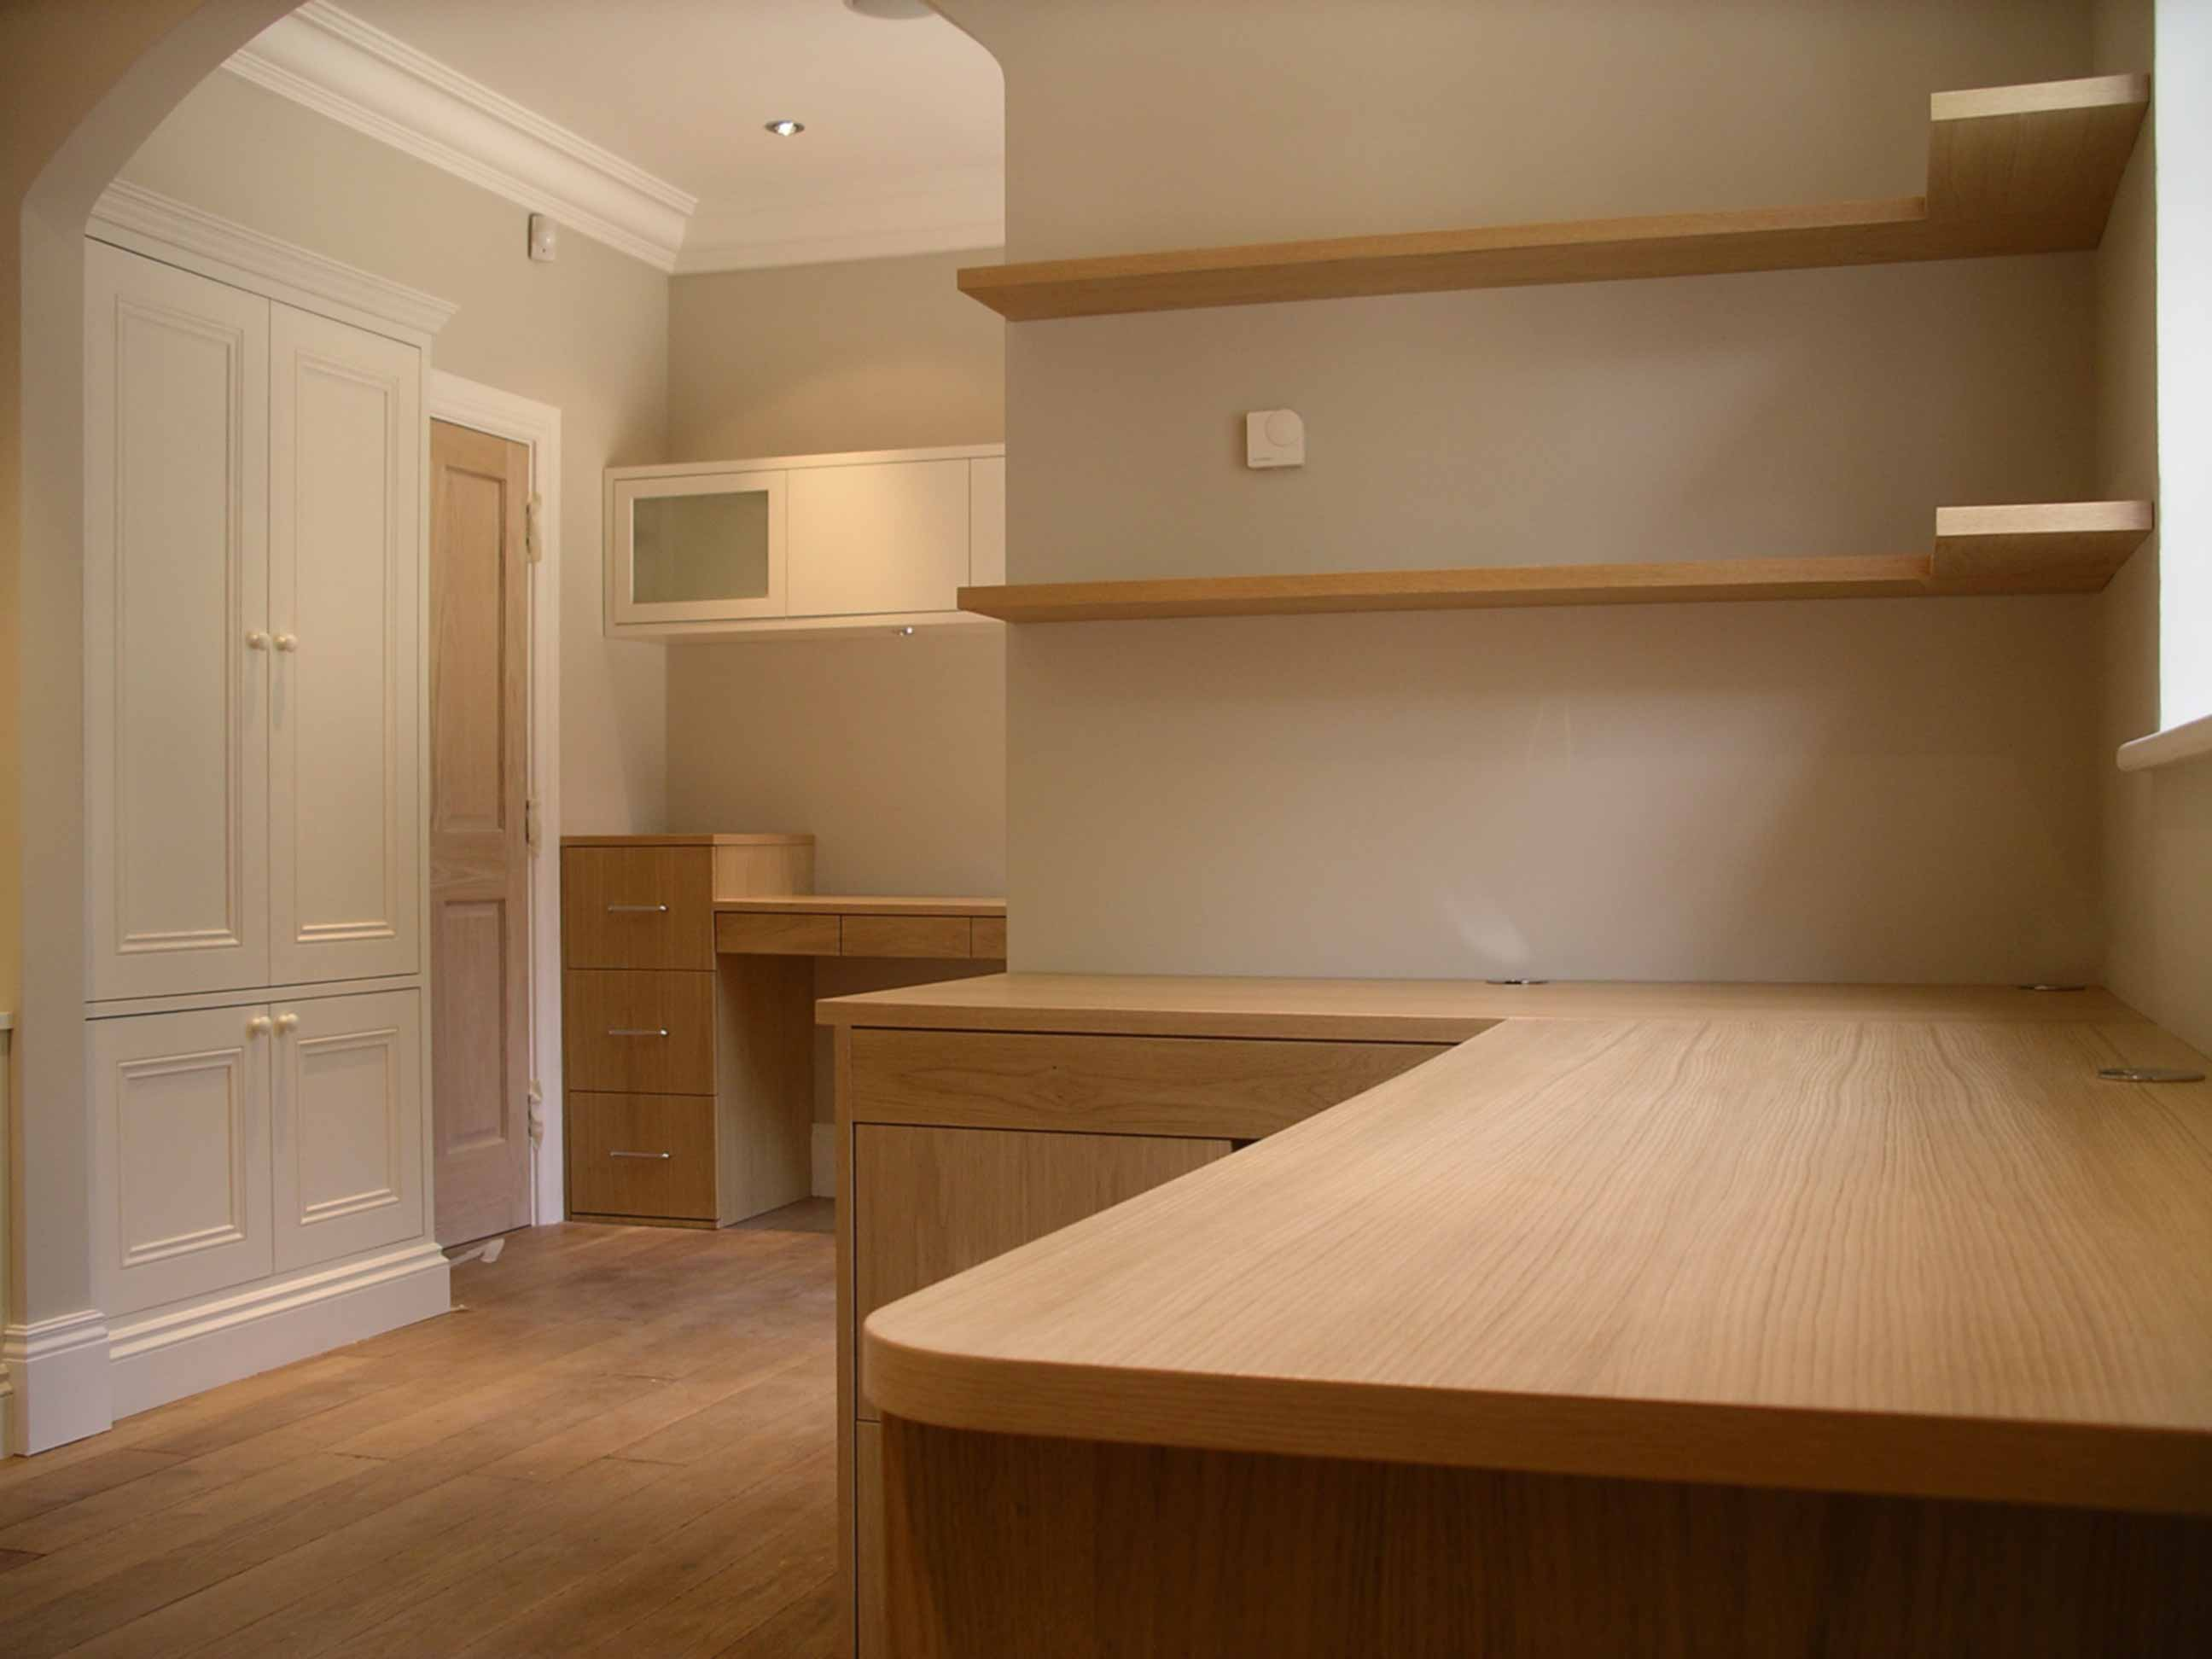 custom made home office furniture.  home excellent new york aug 6 2015 prnewswire the first edition of report  kitchen furniture market in industry providing 20092014 trends  to custom made home office e